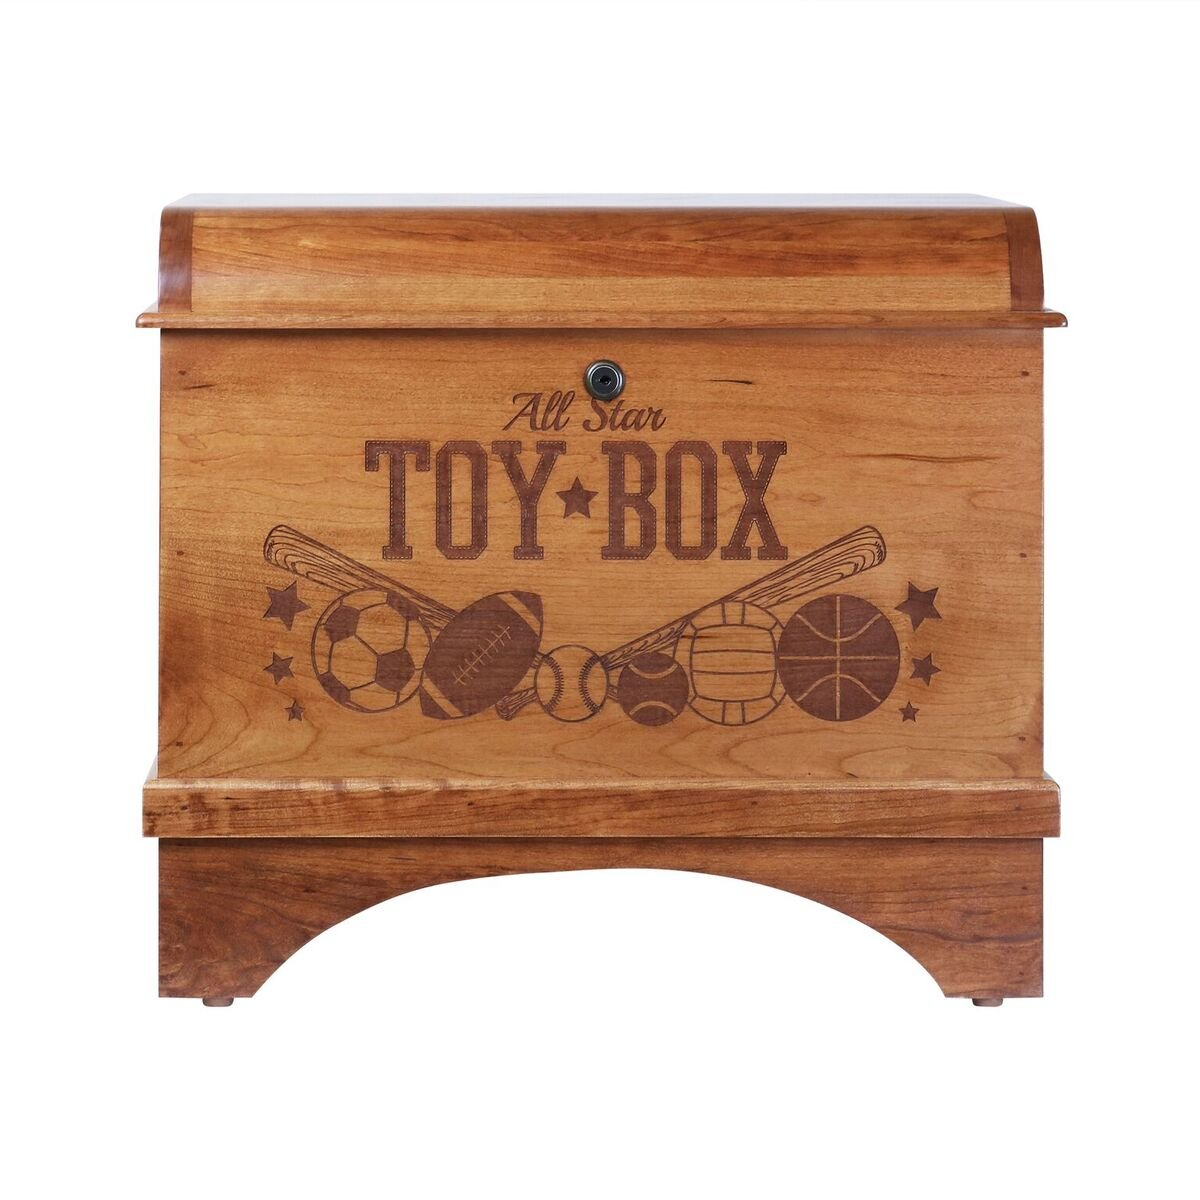 Toy Box Storage Hope Chest for Children's Birthday gift ideas for Daughter Girls, Grandchildren, Granddaughter and Niece Made of Cherry wood with lock Made in USA By Rooms Organized (Toy Box)